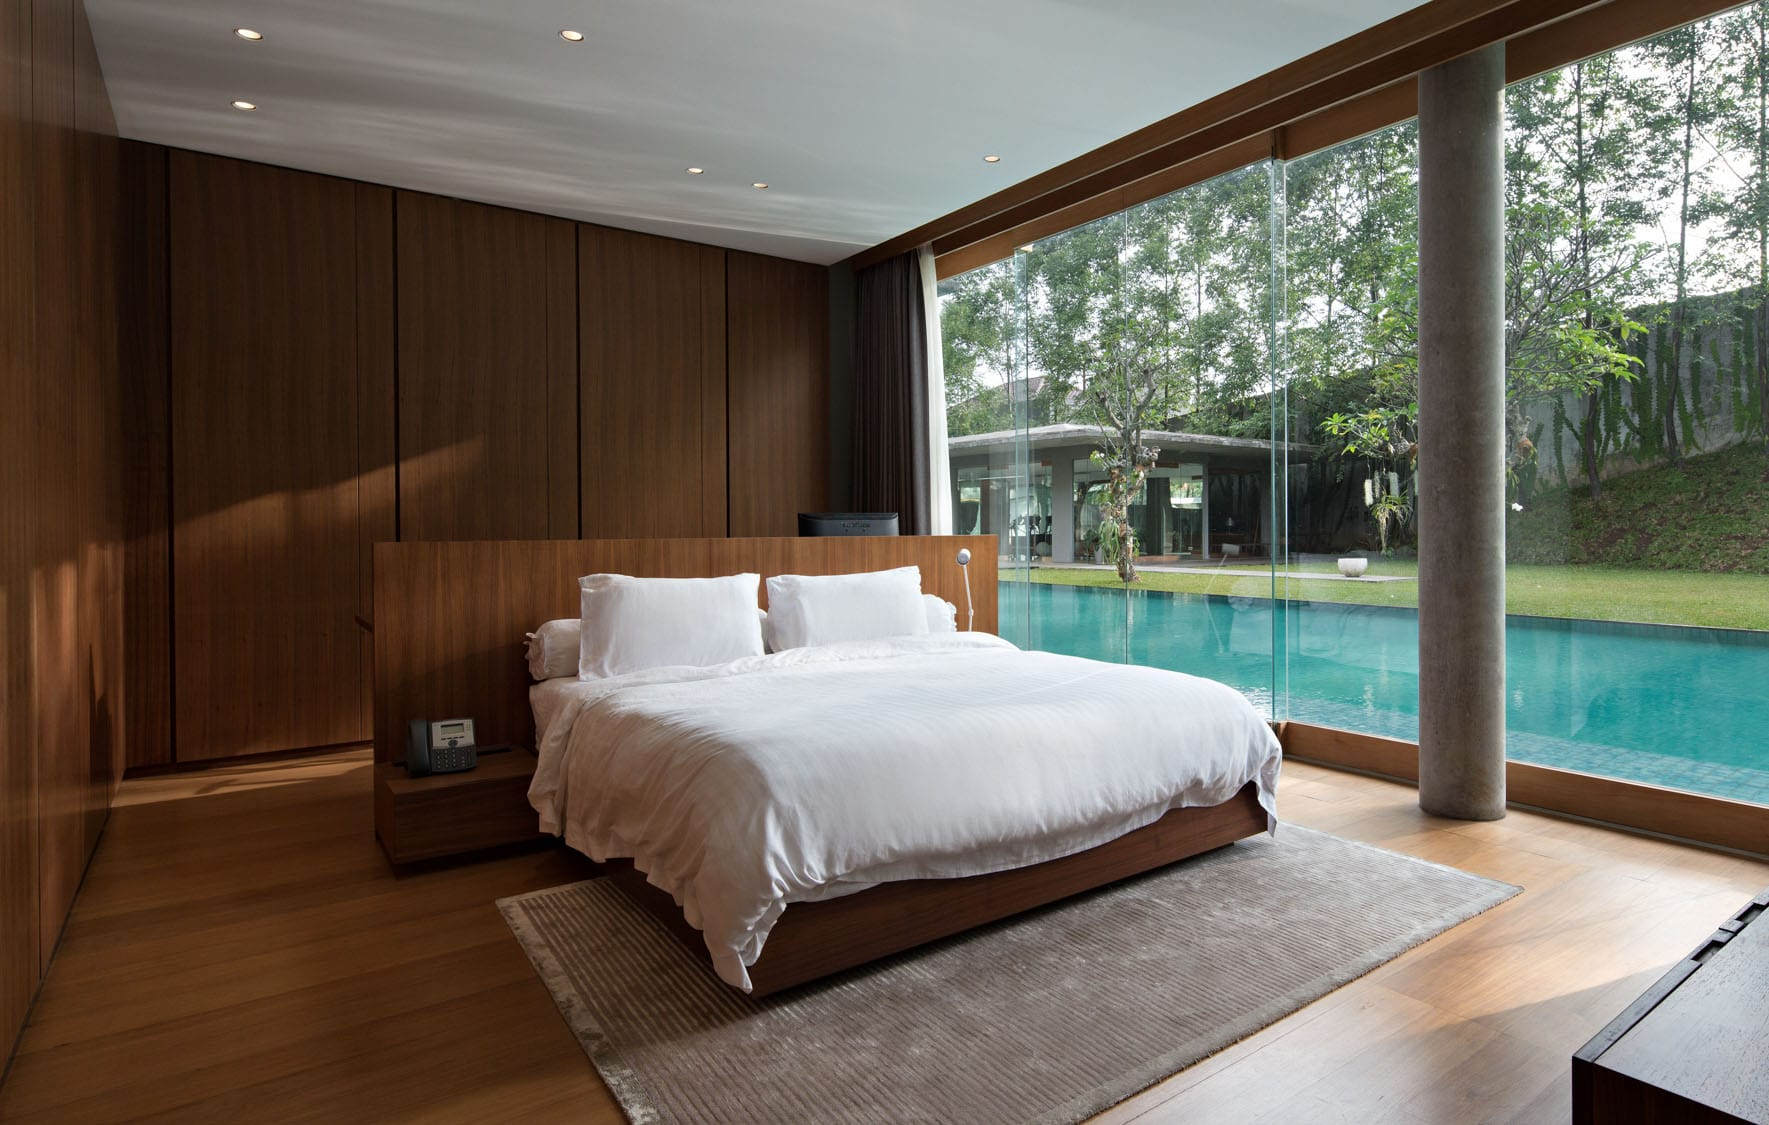 IH Residence in Bandung, Indonesian Architecture, Andra Matin   Yellowtrace